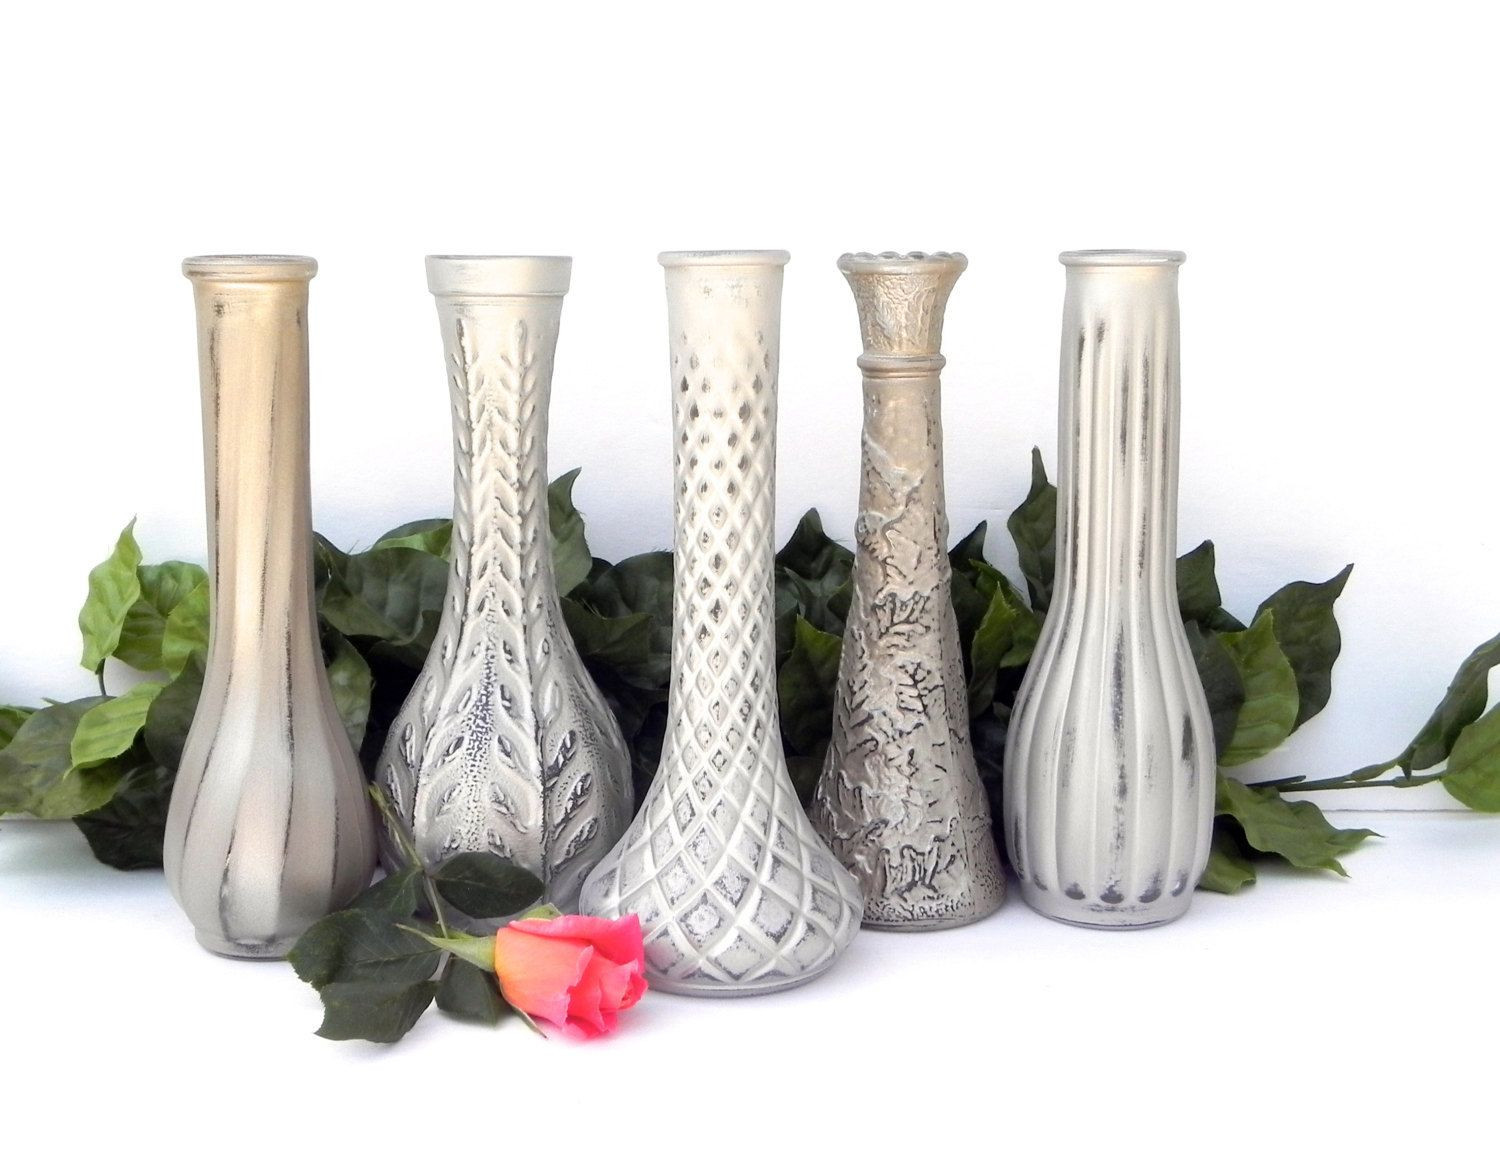 silver vase flower arrangements of silver bud vase pictures wedding flowers wonderful h vases bud vase with regard to silver bud vase photos metallic shabby chic bud vases nickel silver and by glasscastle2 of silver